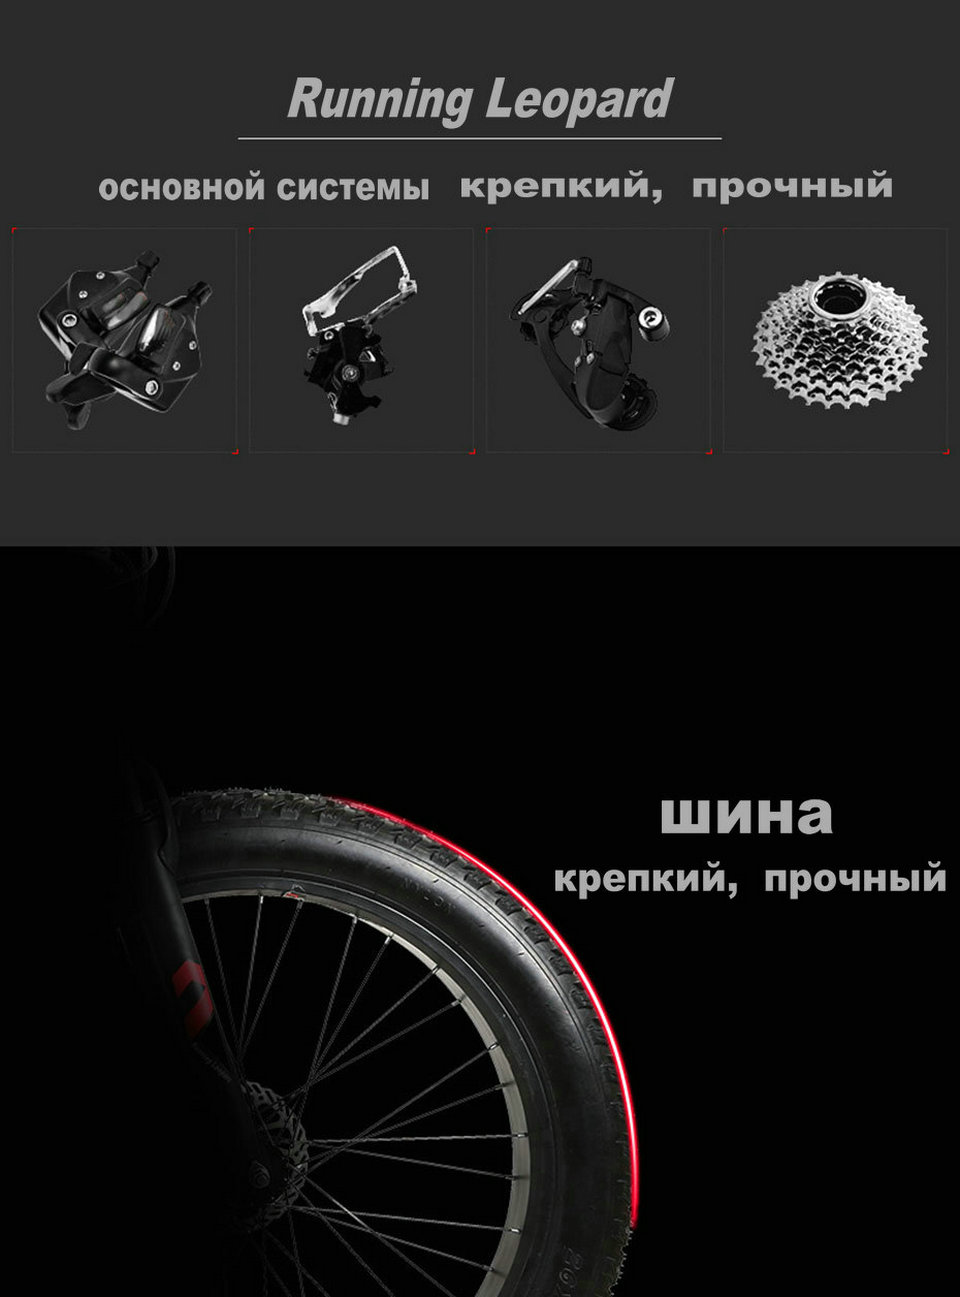 HTB1TjFcchSYBuNjSsphq6zGvVXaL Fat Bike Speed Change Cross-country Mountain Bike, 4.0 Super Wide Tires, Snow Sand Bicycle, Male And Female Student Bicycle